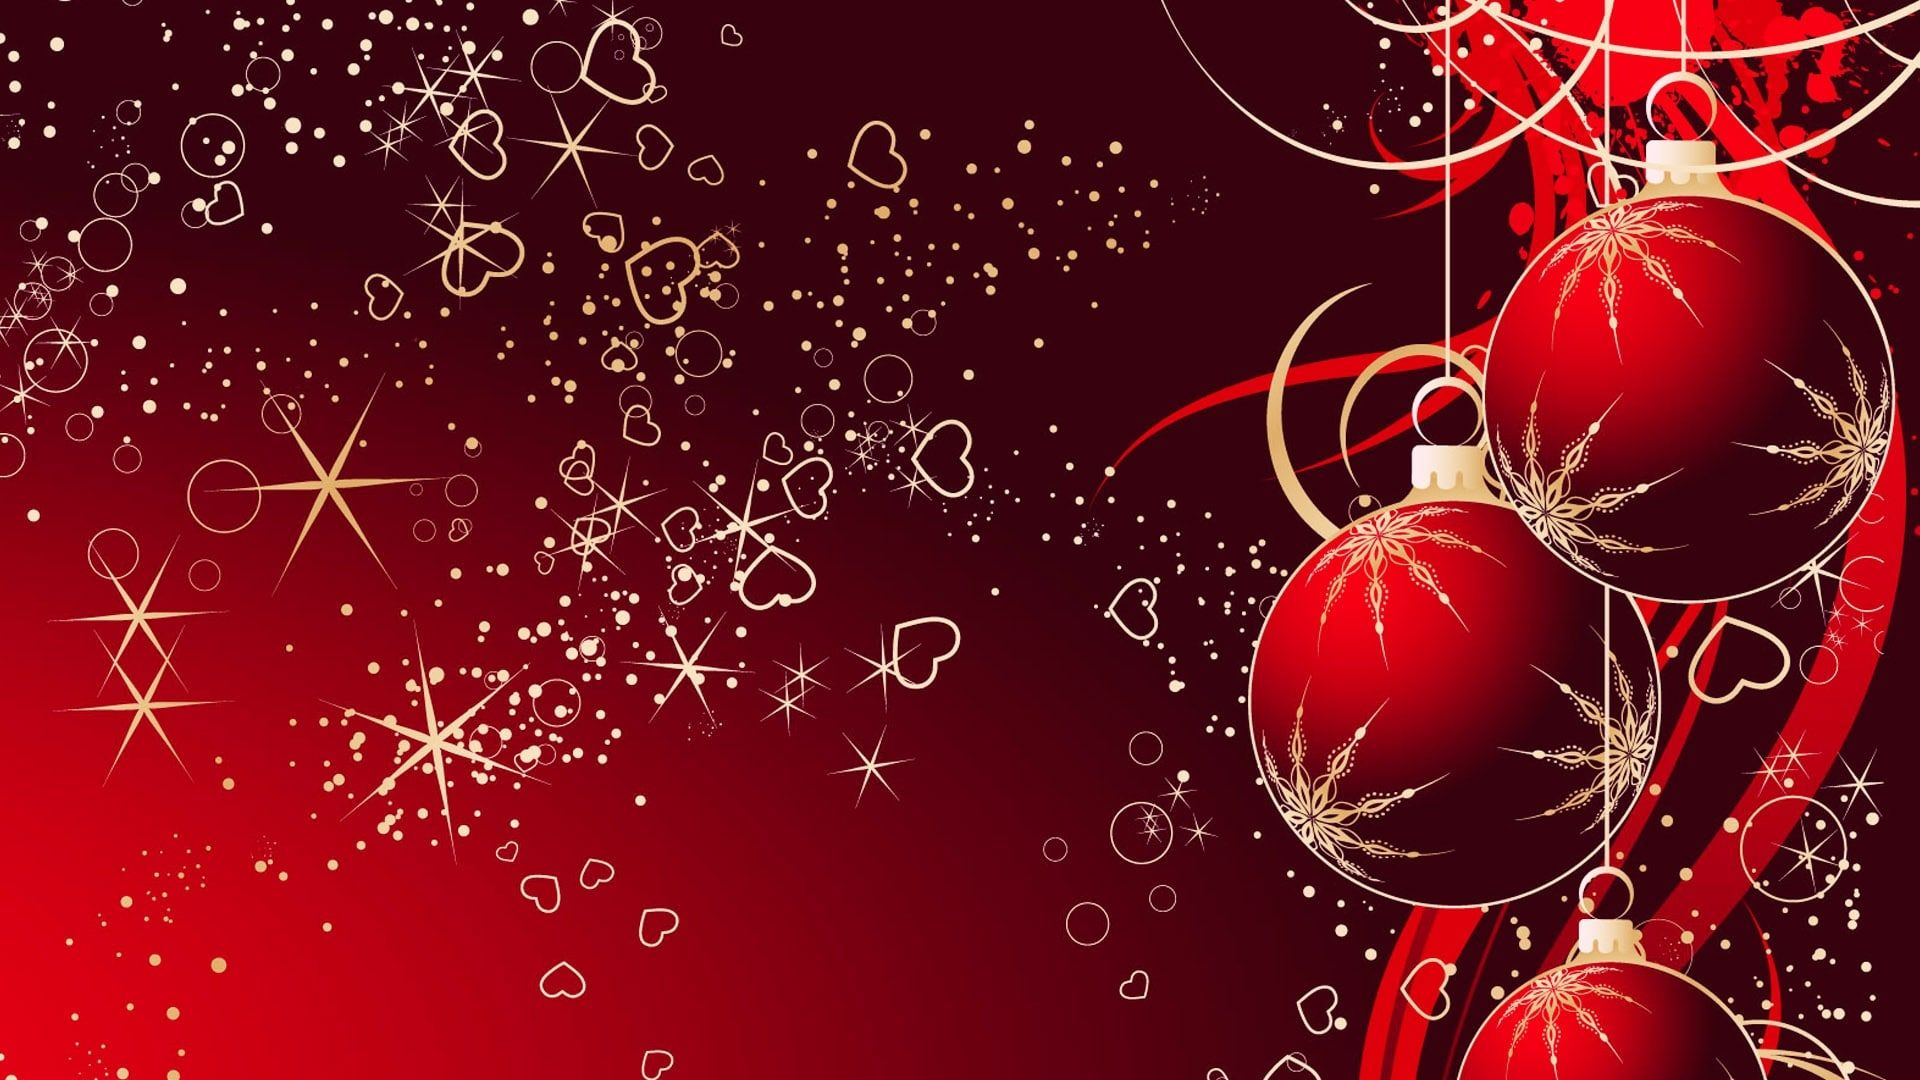 so, here we are with some attractive and amazing christmas wallpaper